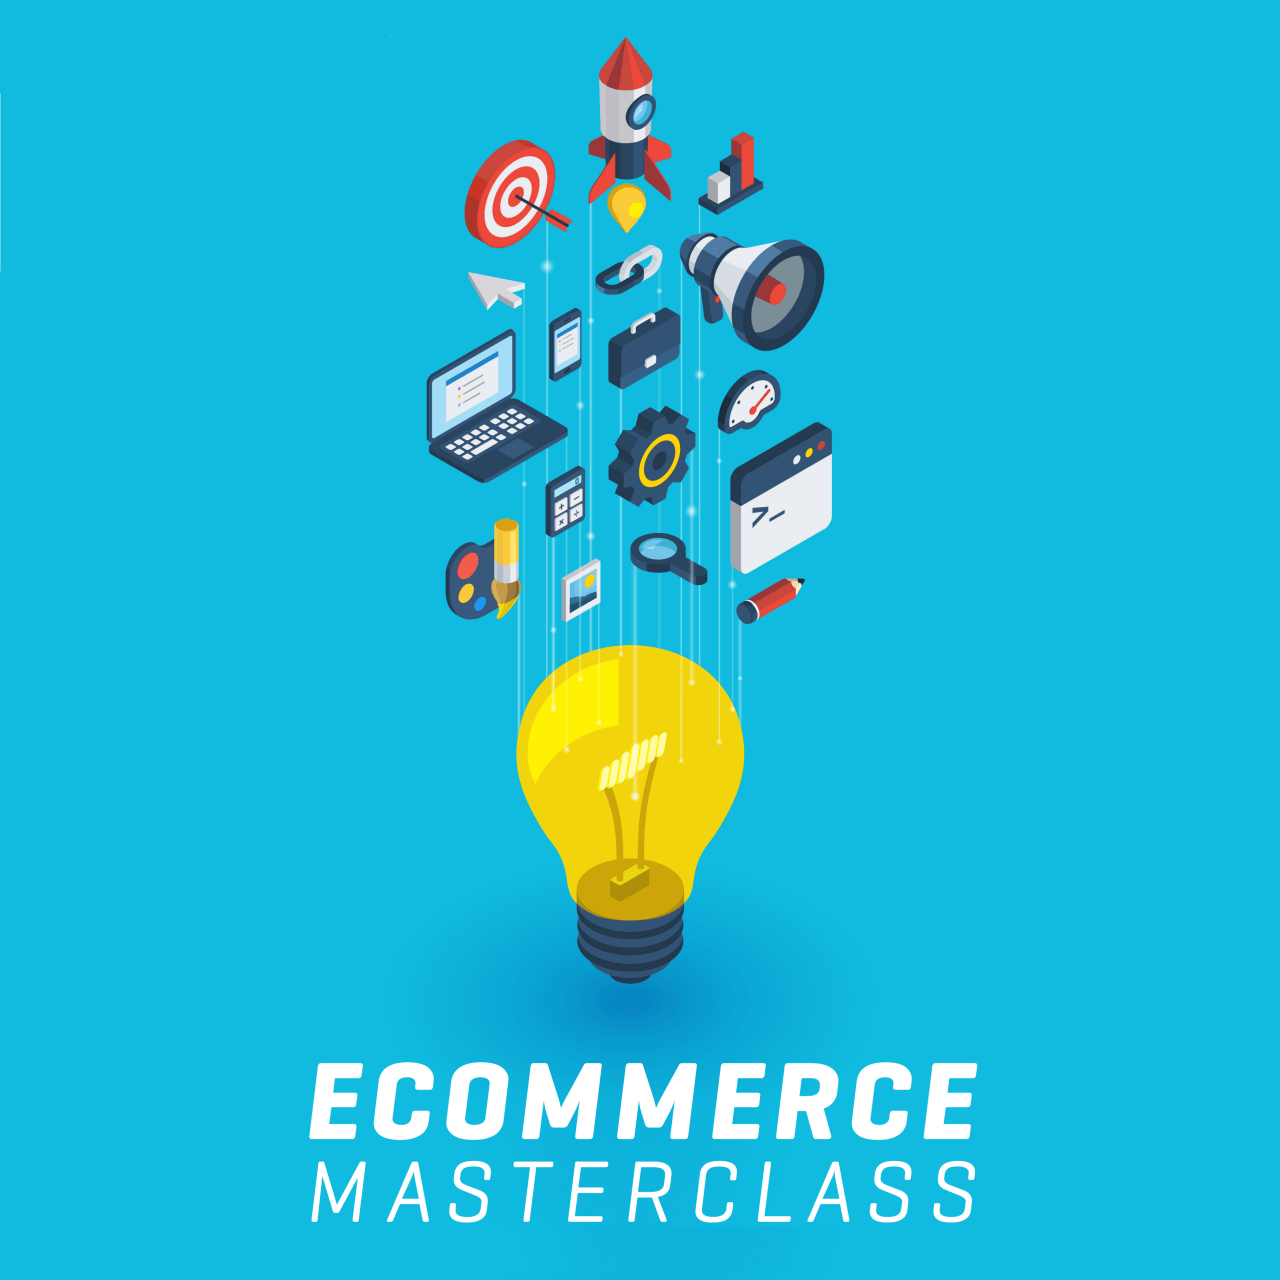 [SUPER HOT SHARE] Branded Ecommerce Masterclass Download